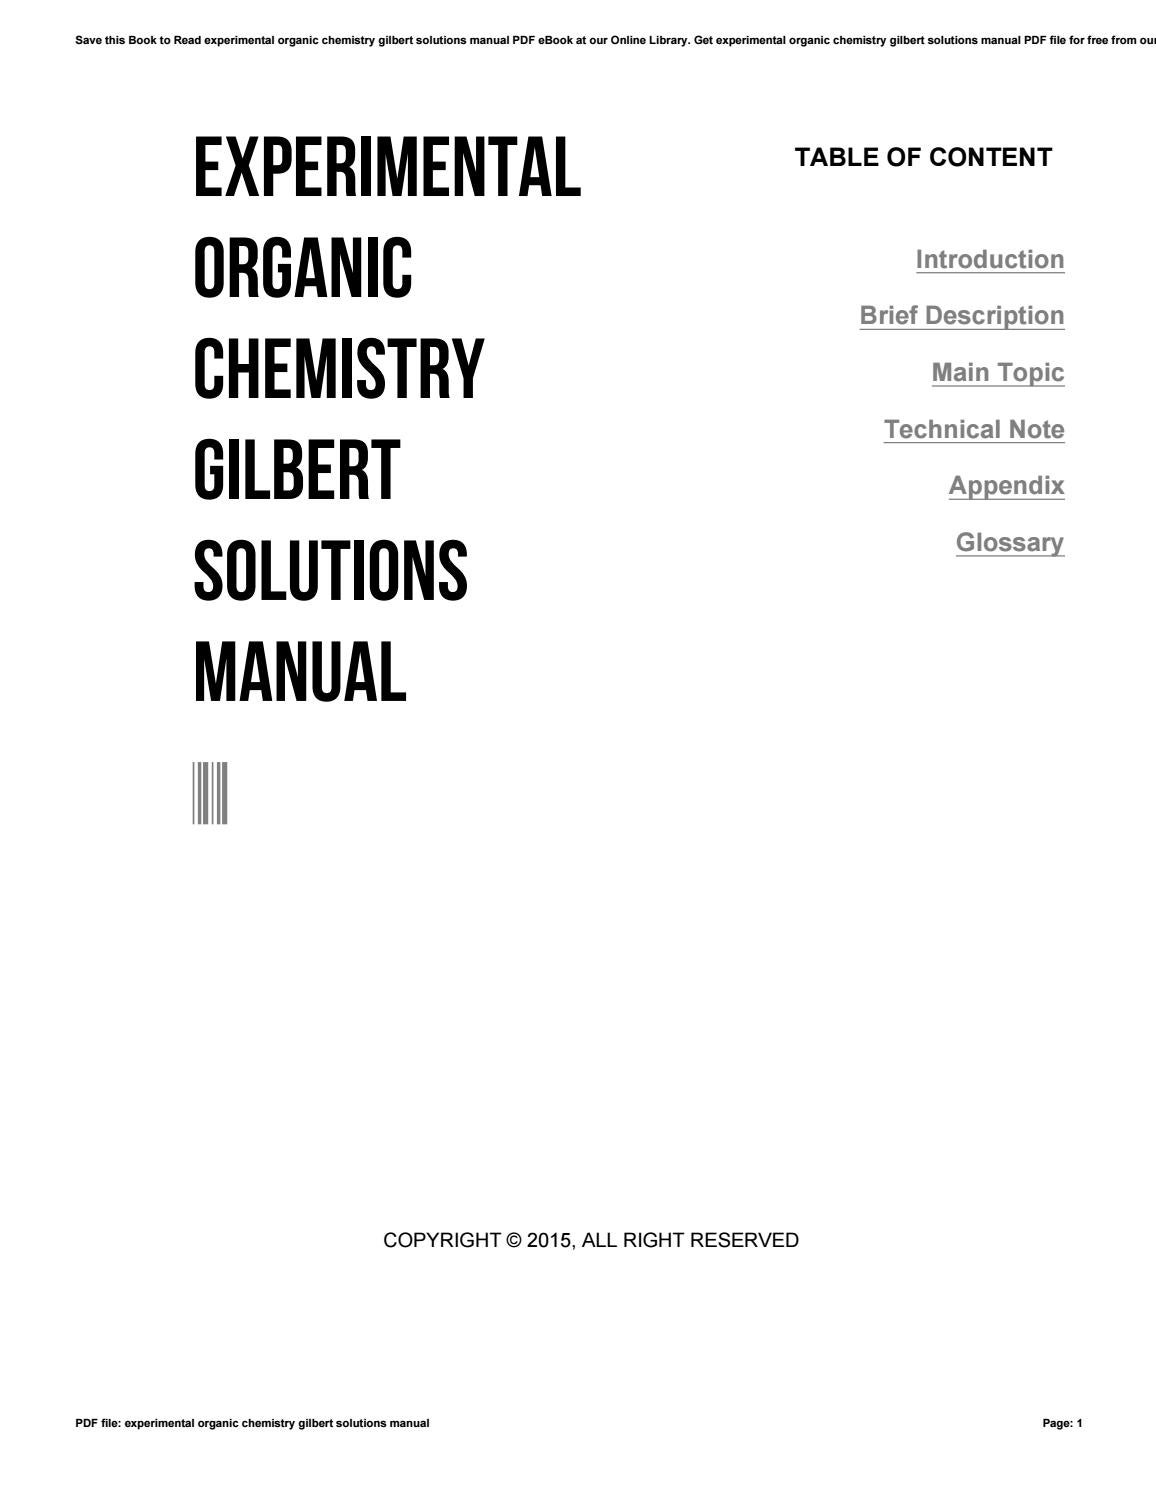 Experimental organic chemistry gilbert solutions manual by